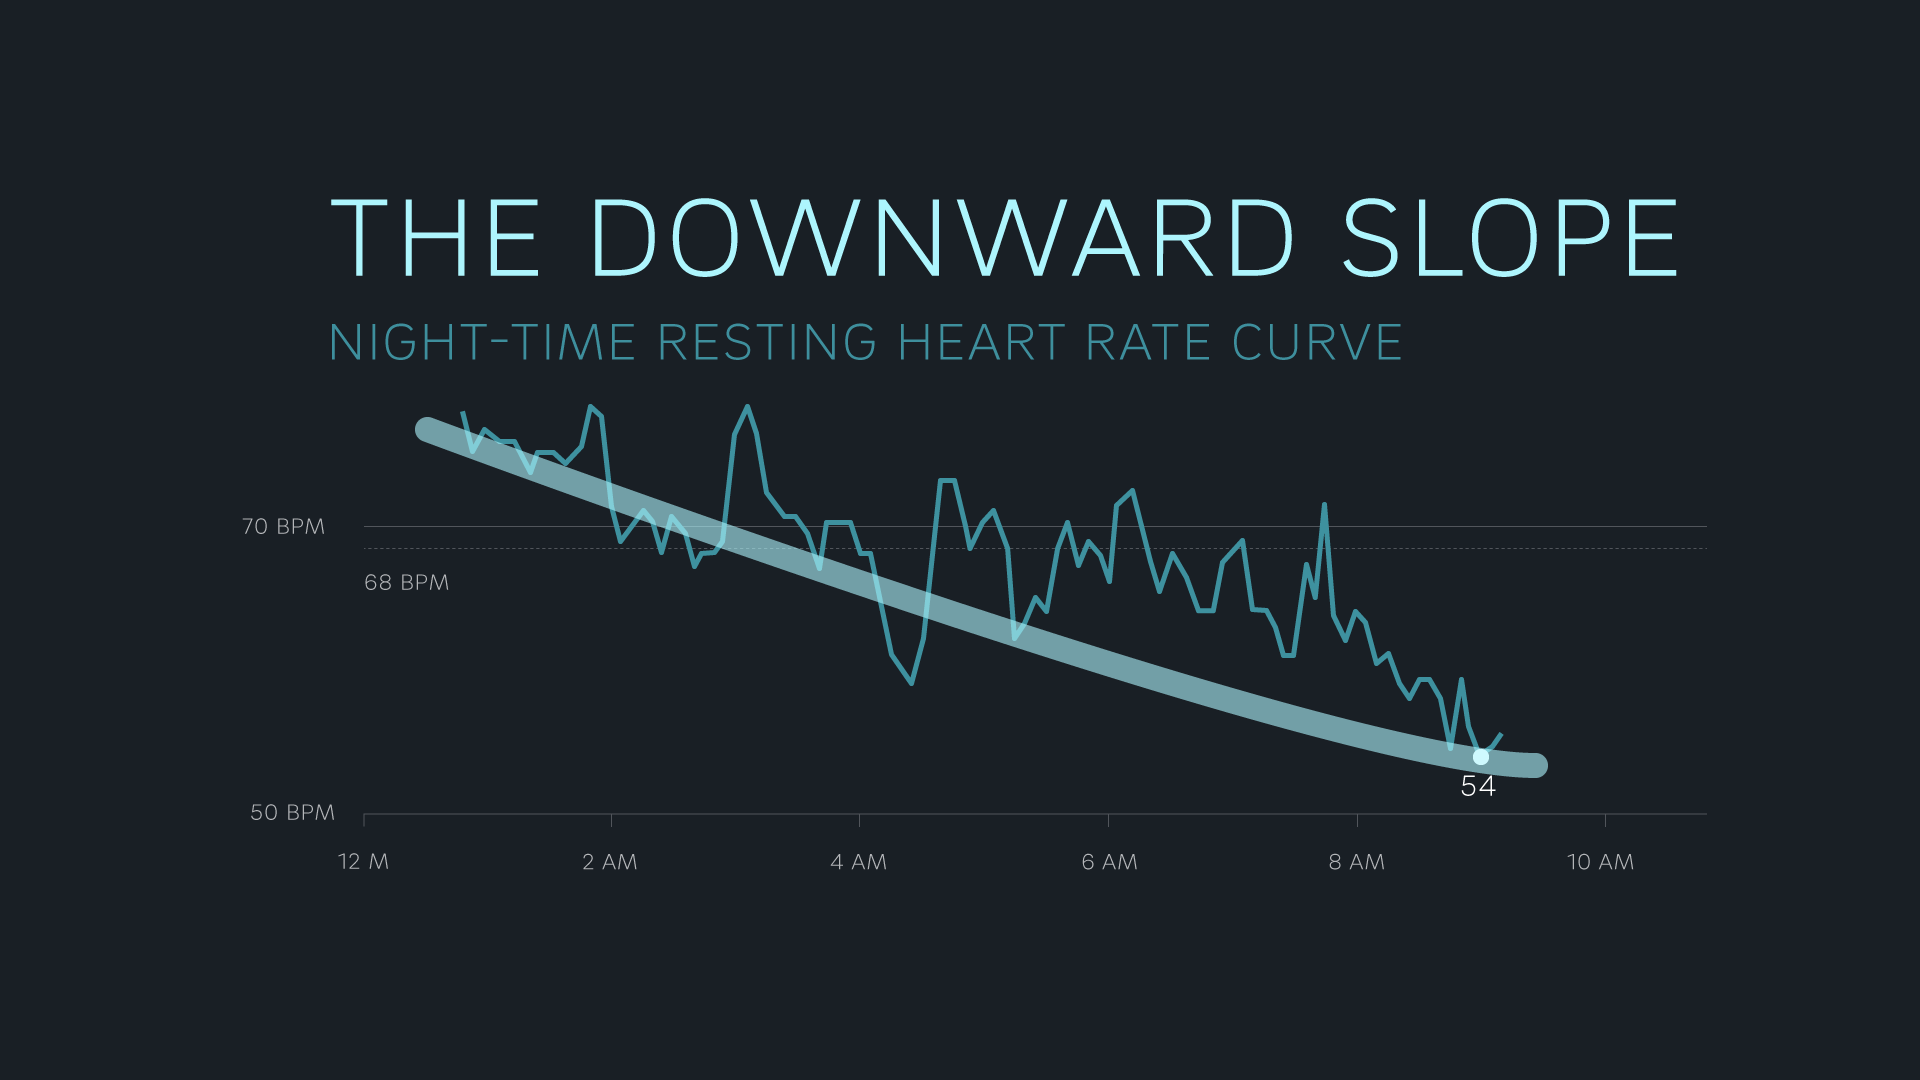 The downward slope-shaped heart rate curve